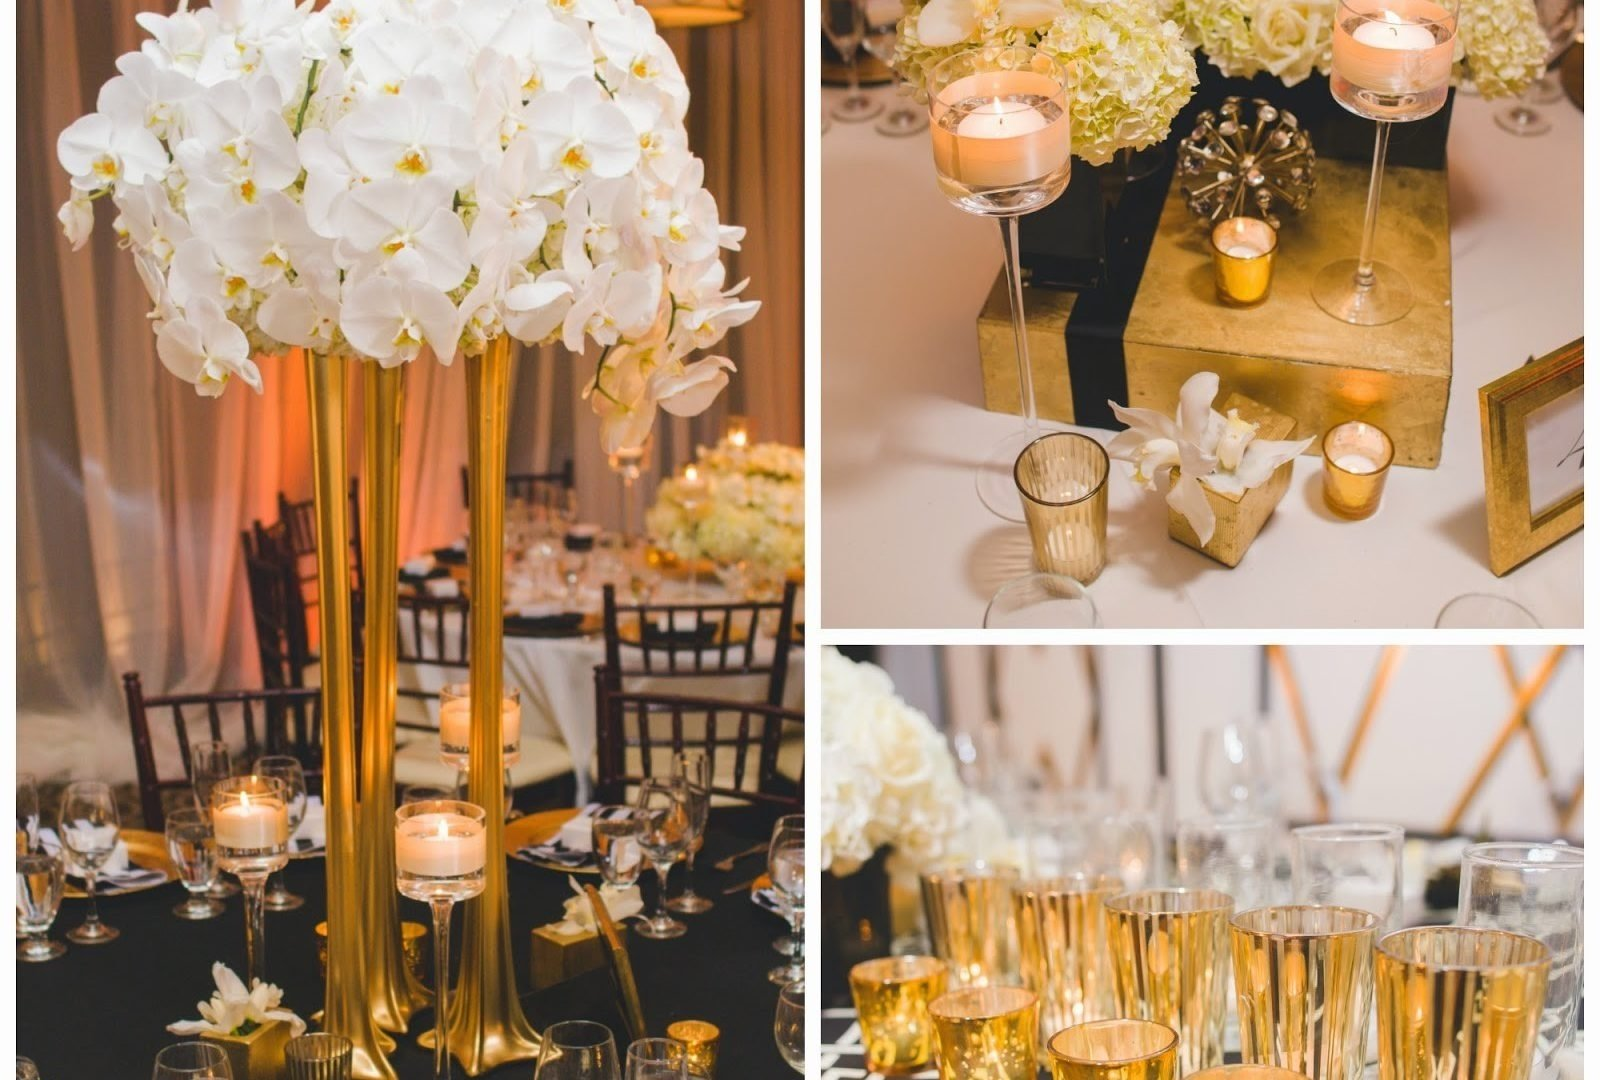 10 Most Recommended Black And Gold Centerpiece Ideas black and gold wedding reception decorations inspirational dreams 2020